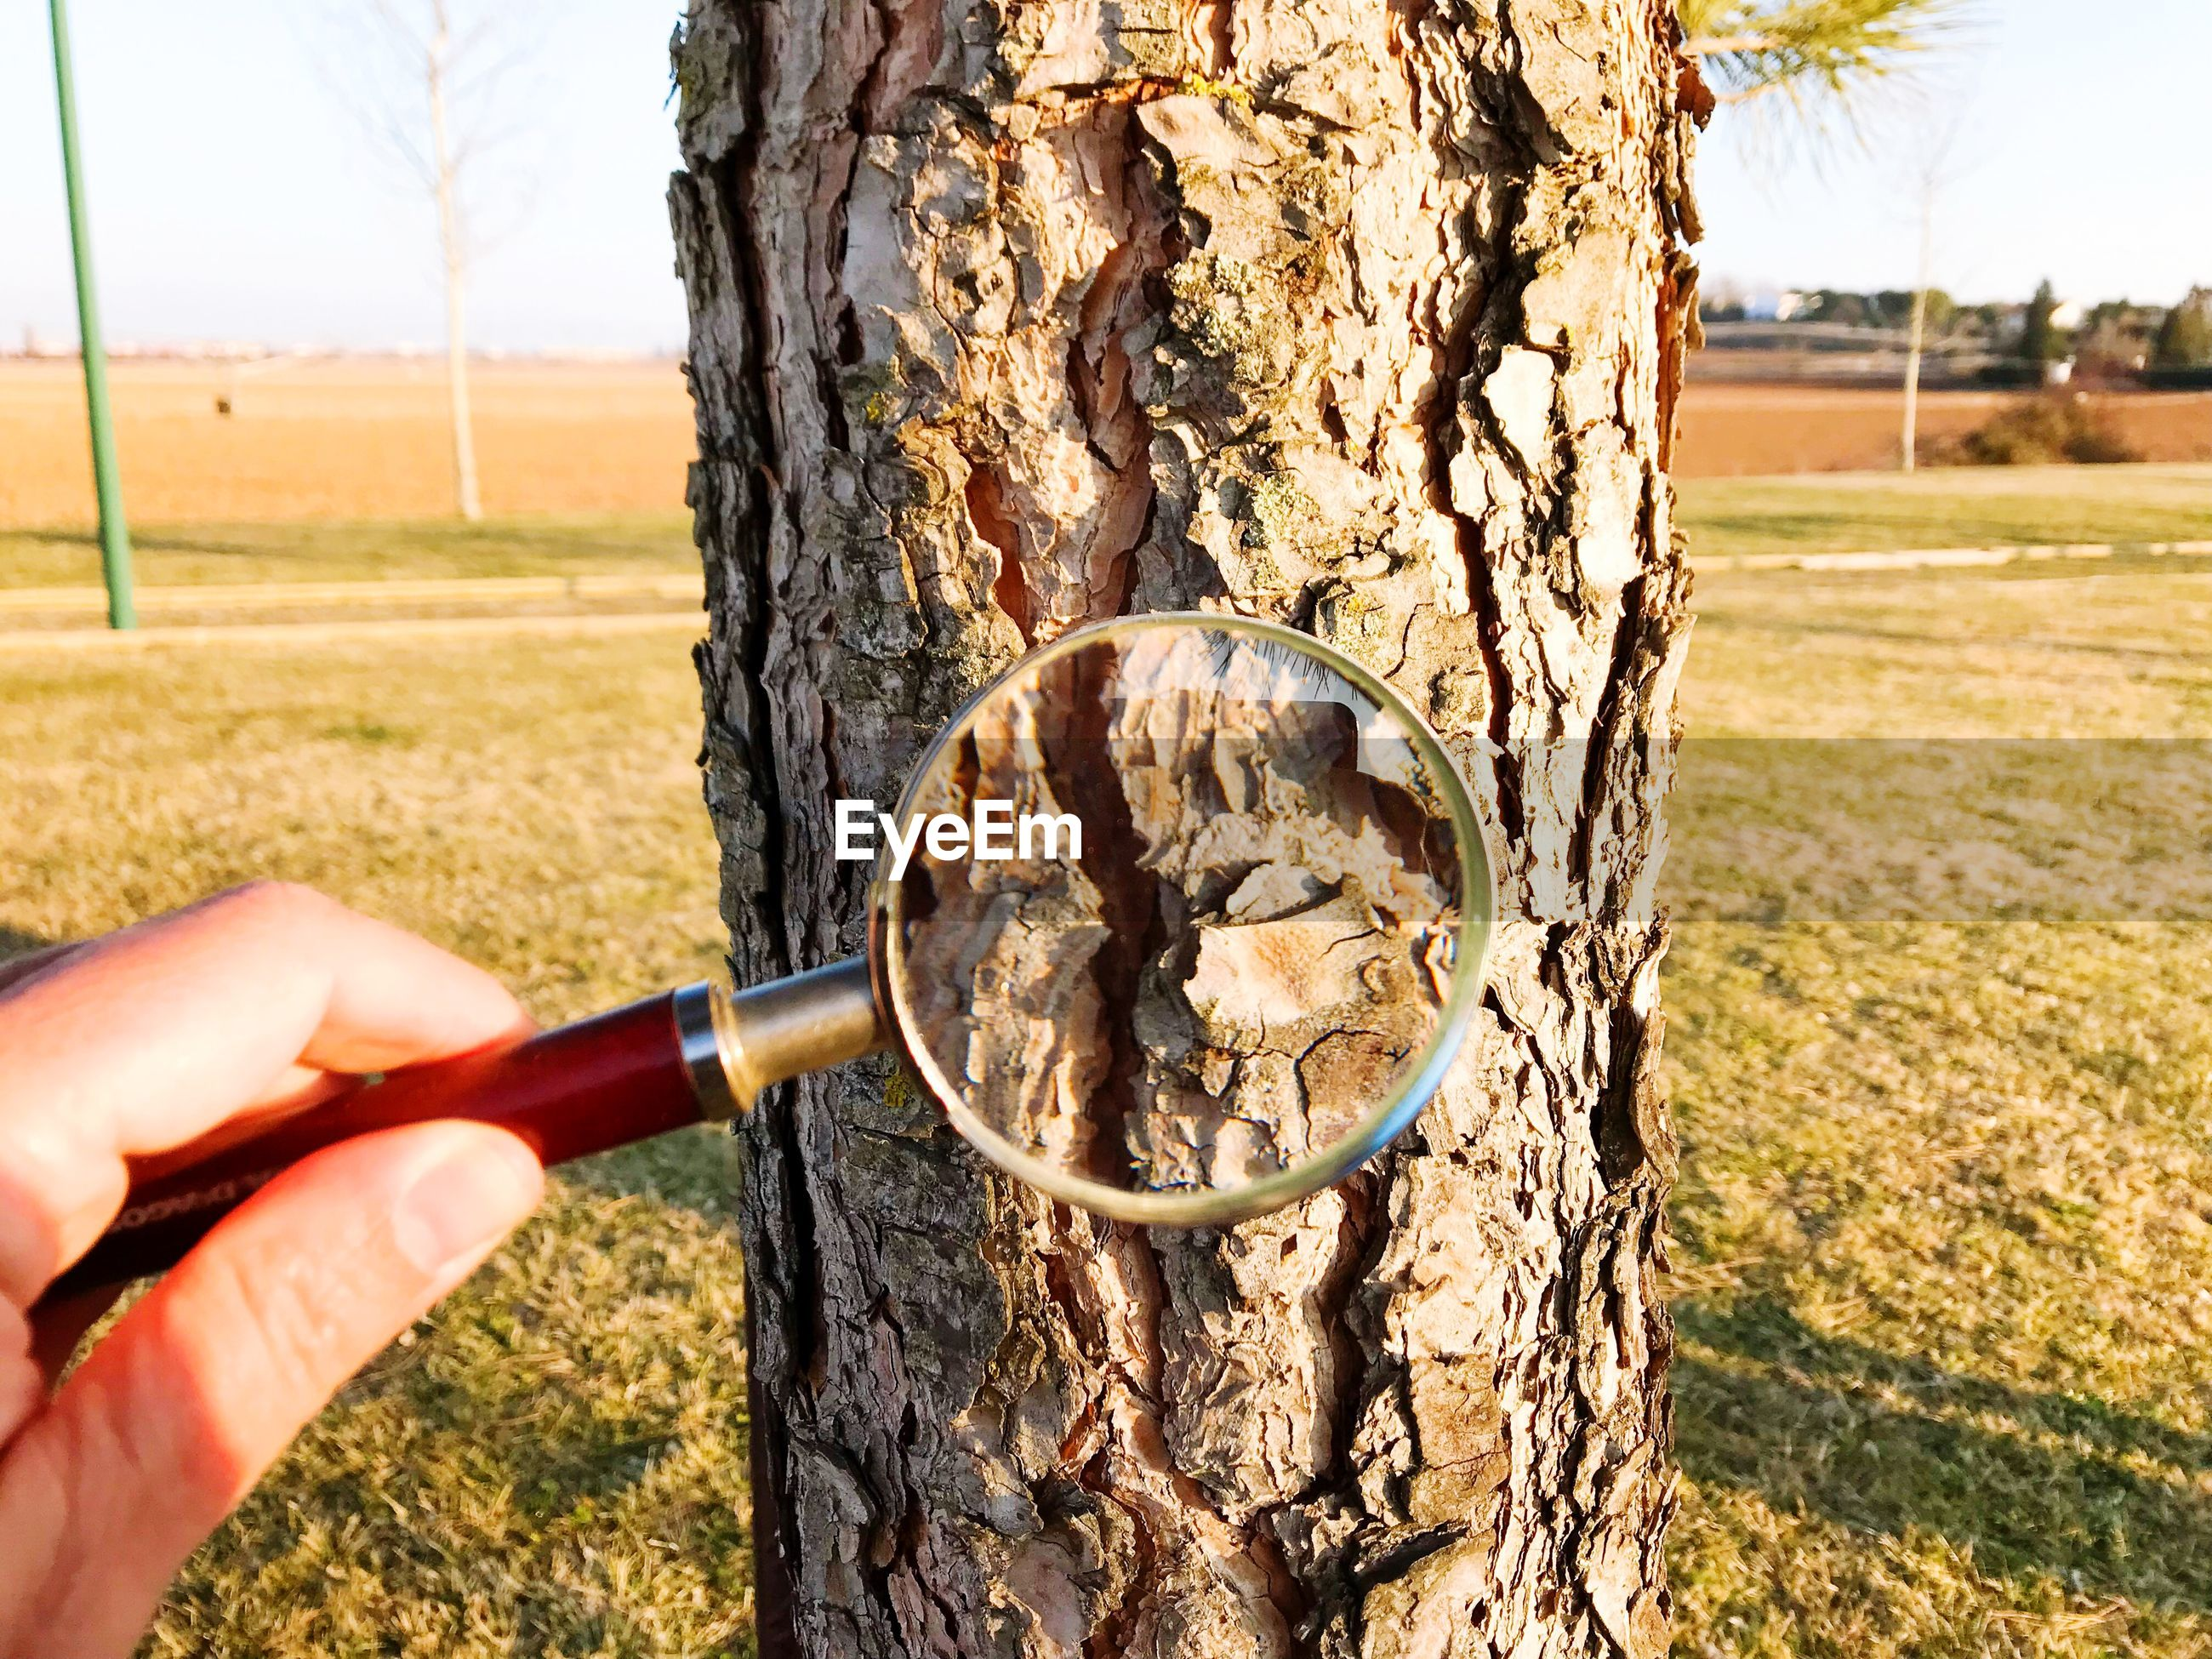 Cropped hand holding magnifying glass against tree trunk